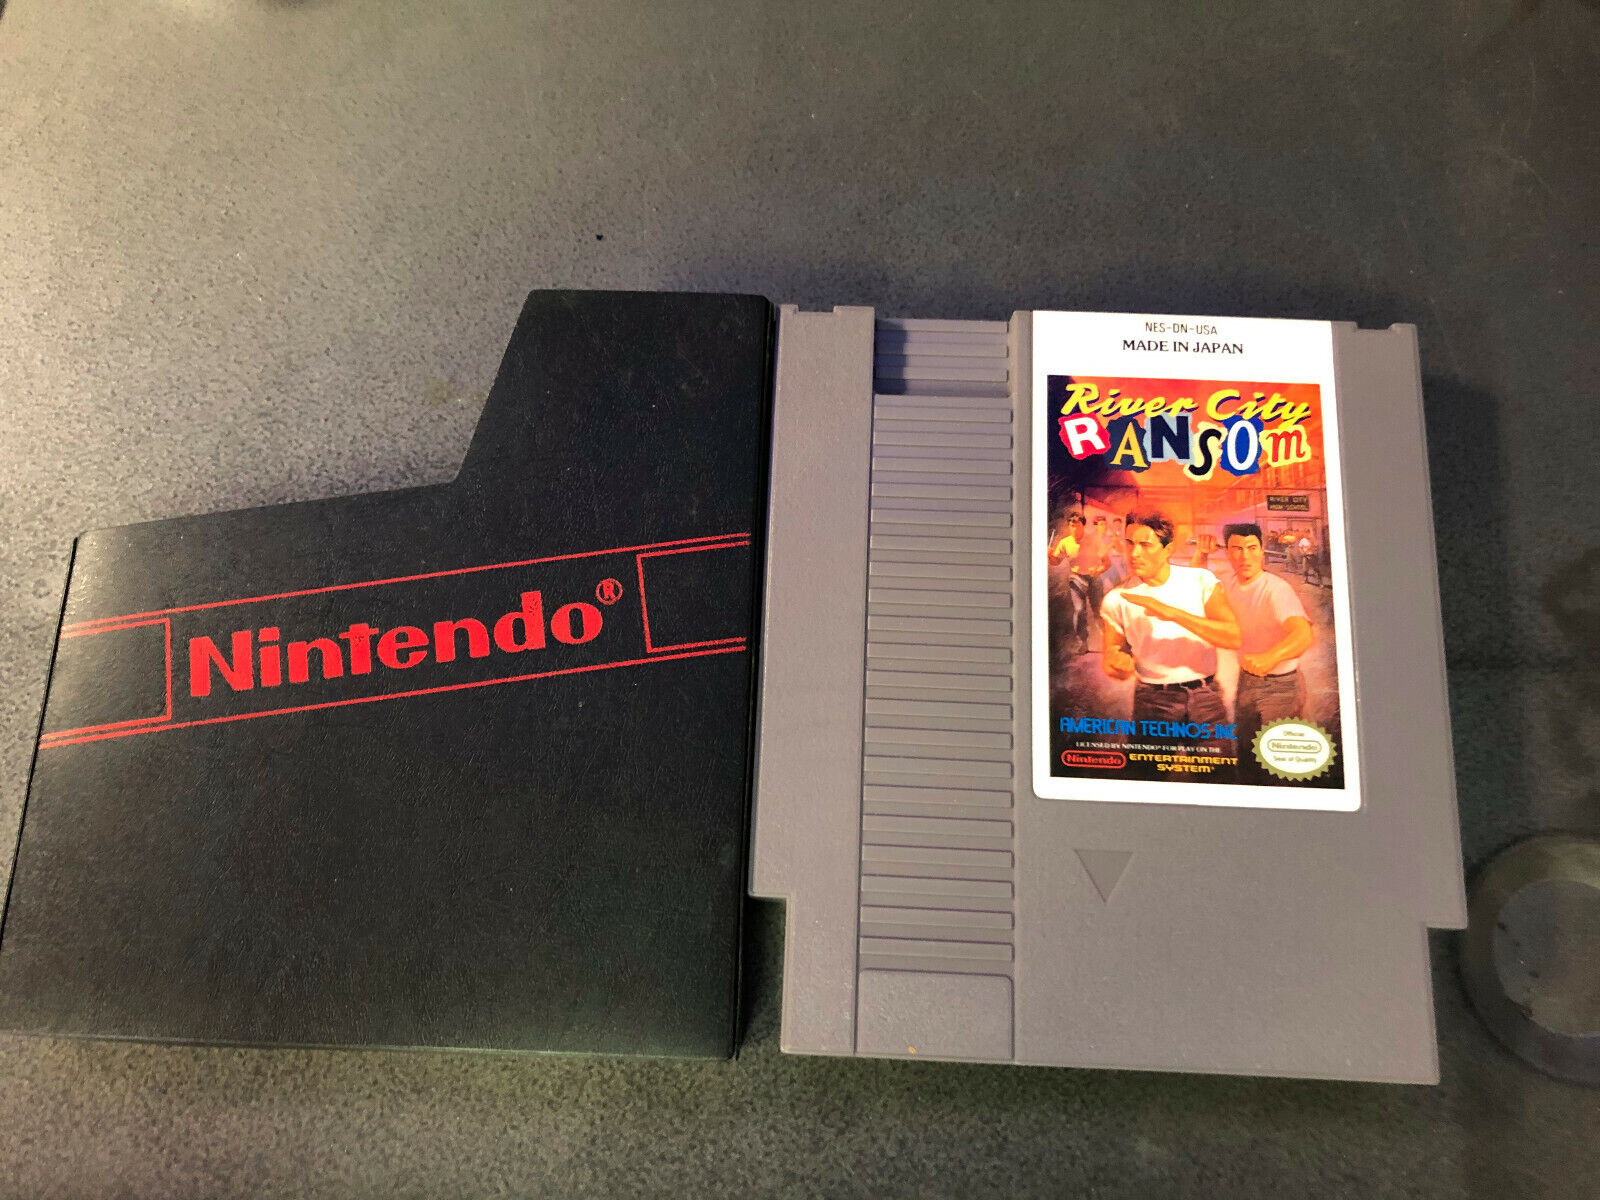 River City Ransom Nintendo Entertainment System NES 1989 Authentic RARE Tested - $46.00